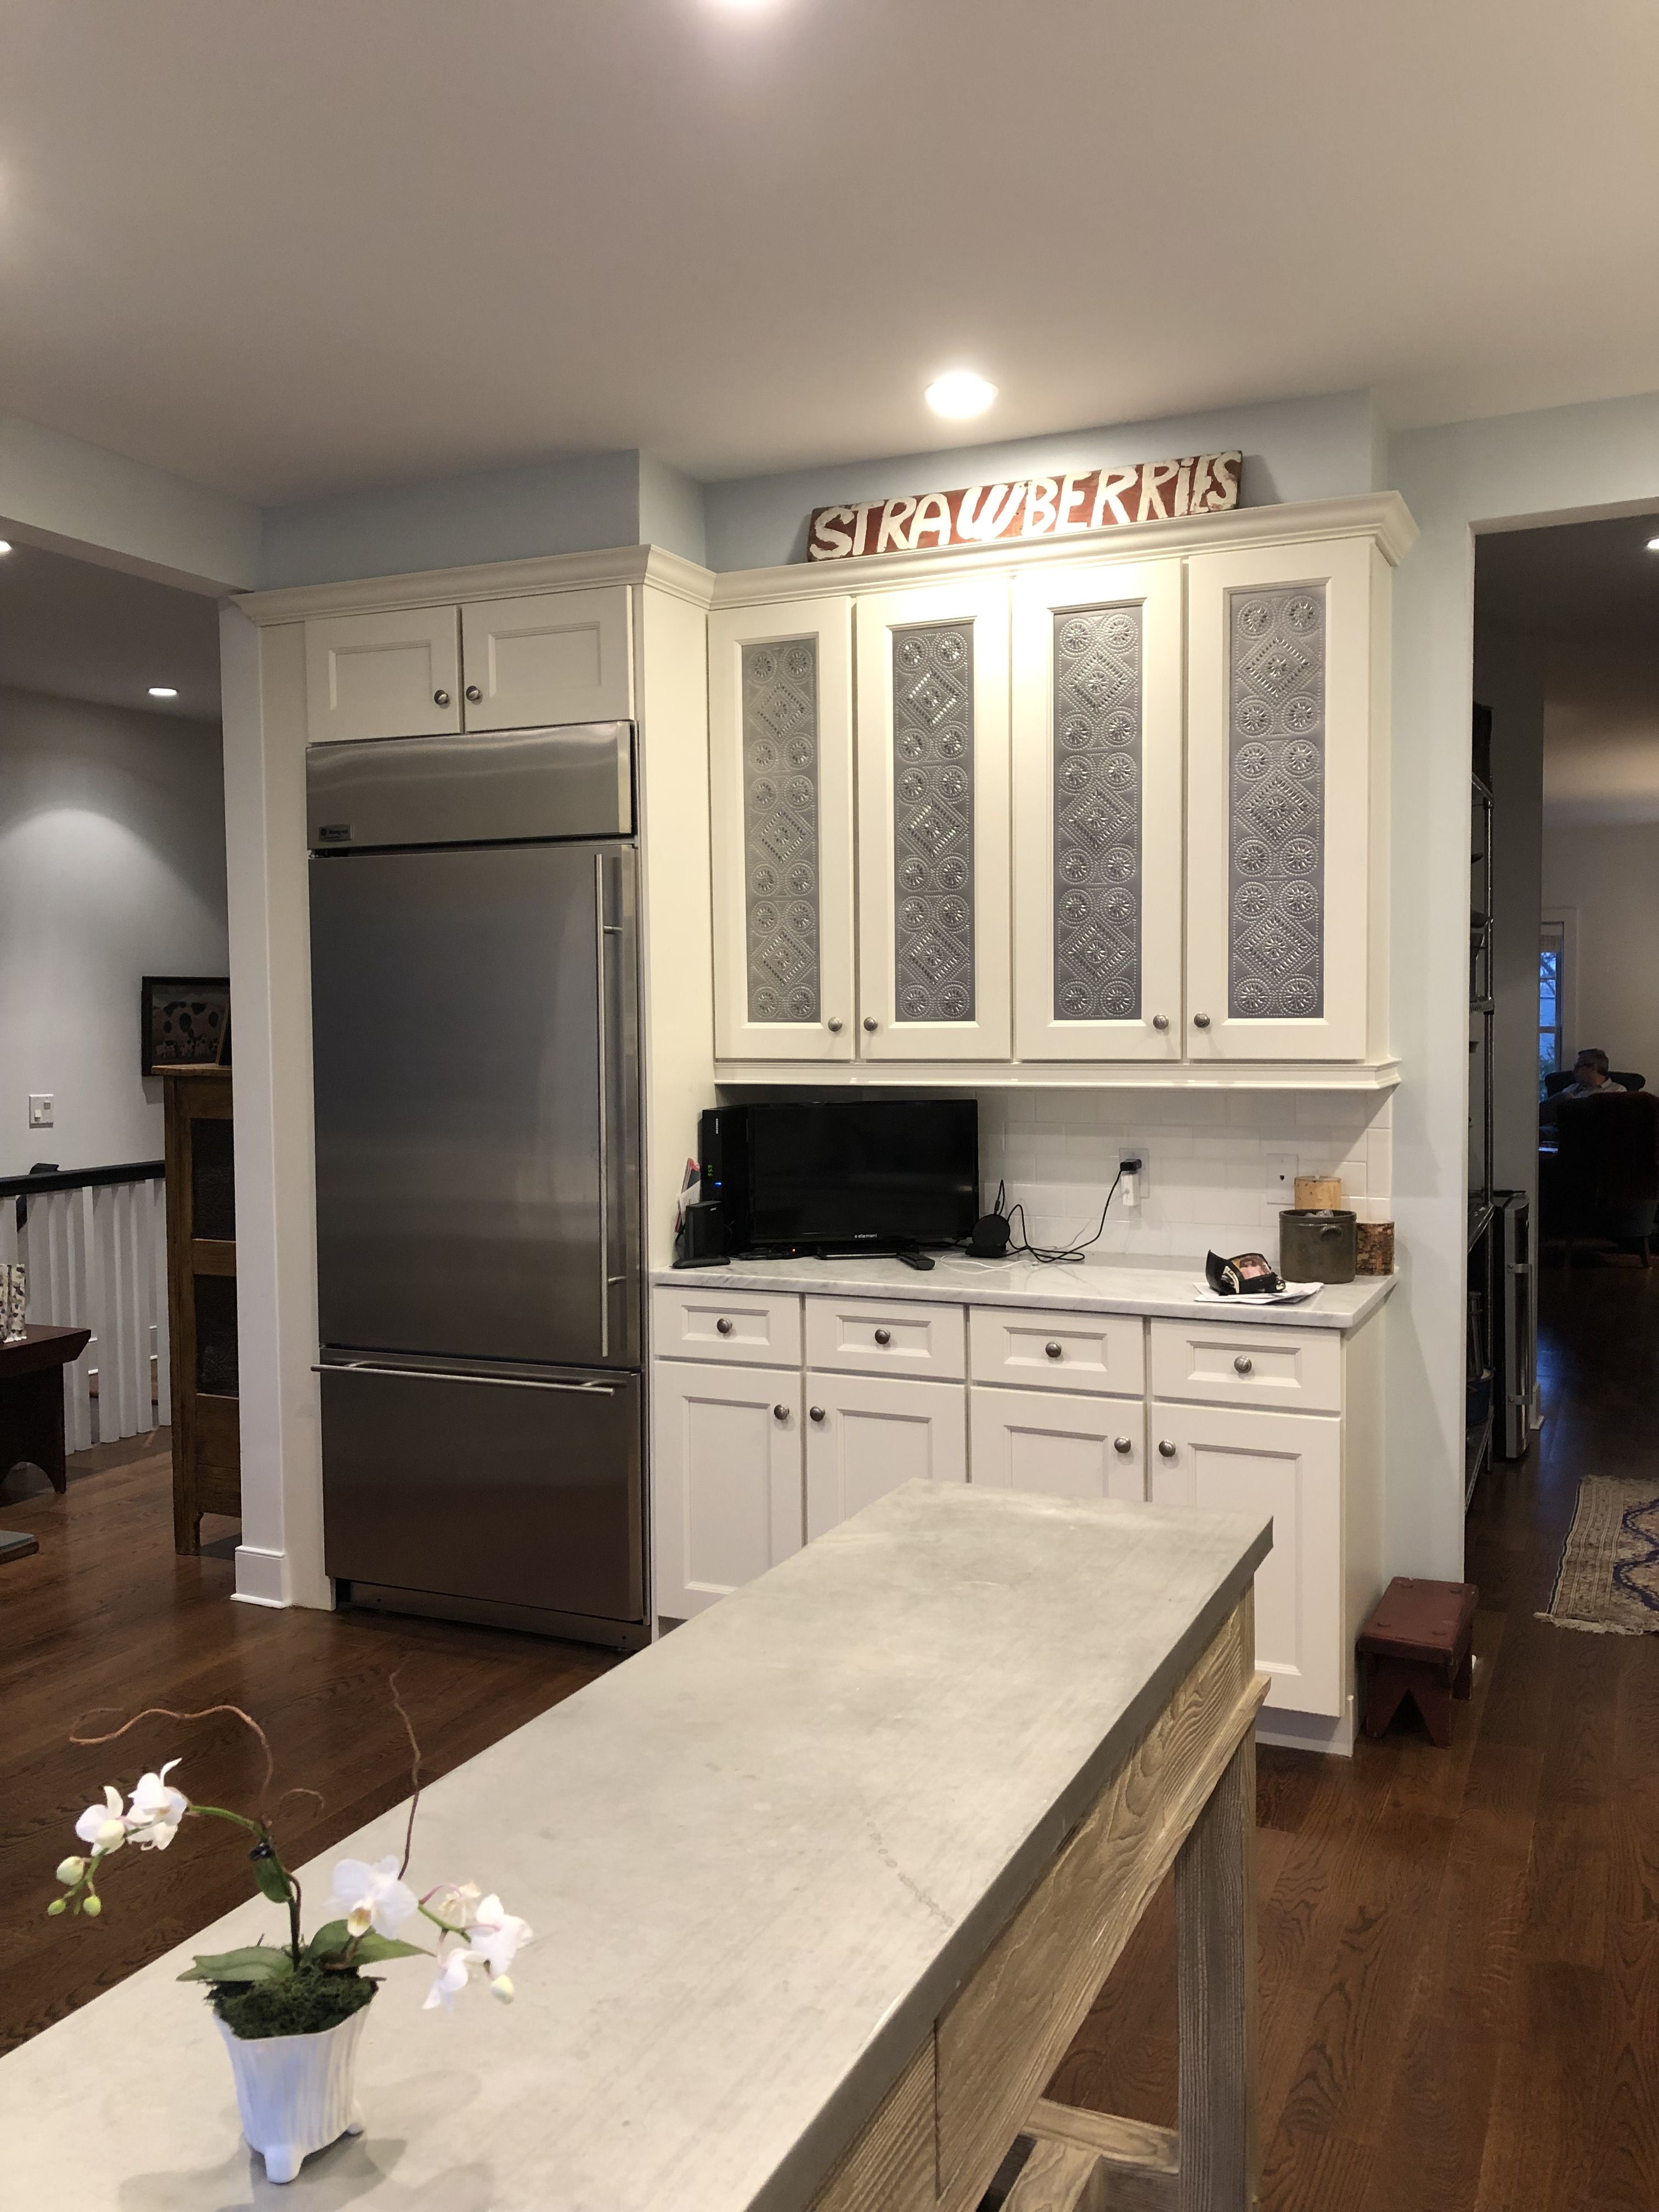 The Builder S Kitchen Cabinets After The Dyi Project Of Covering The Glass With Pierced Tin Panels Kitchen Cabinets Kitchen Tin Panel